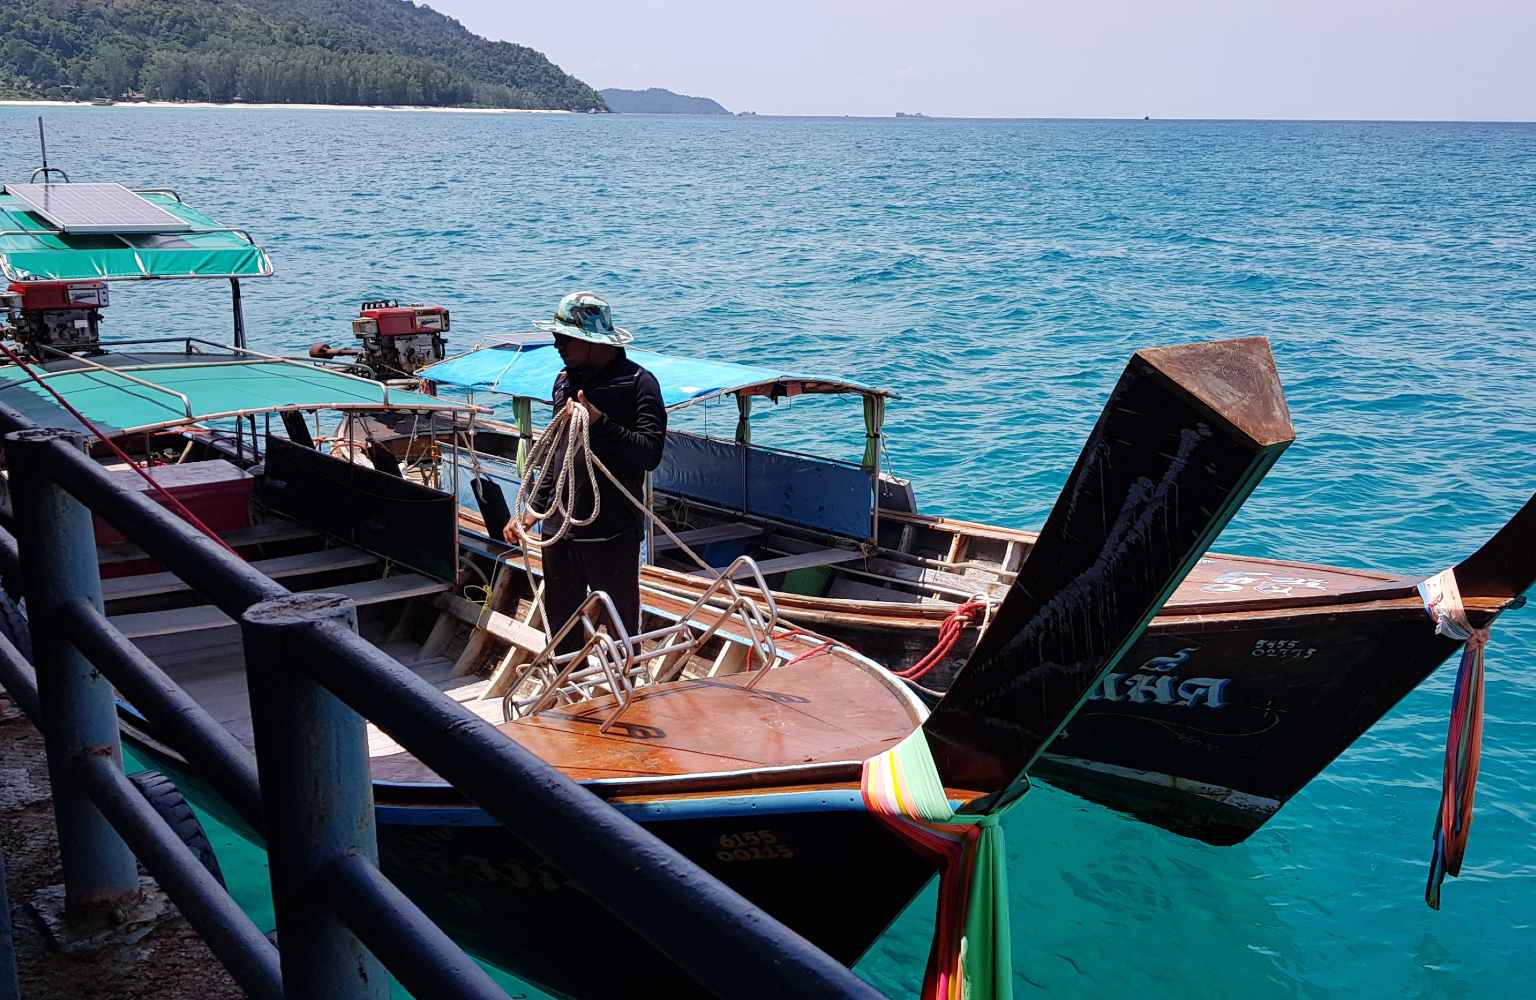 By longtail boat from the platform into the sea to Koh Lipe in Thailand